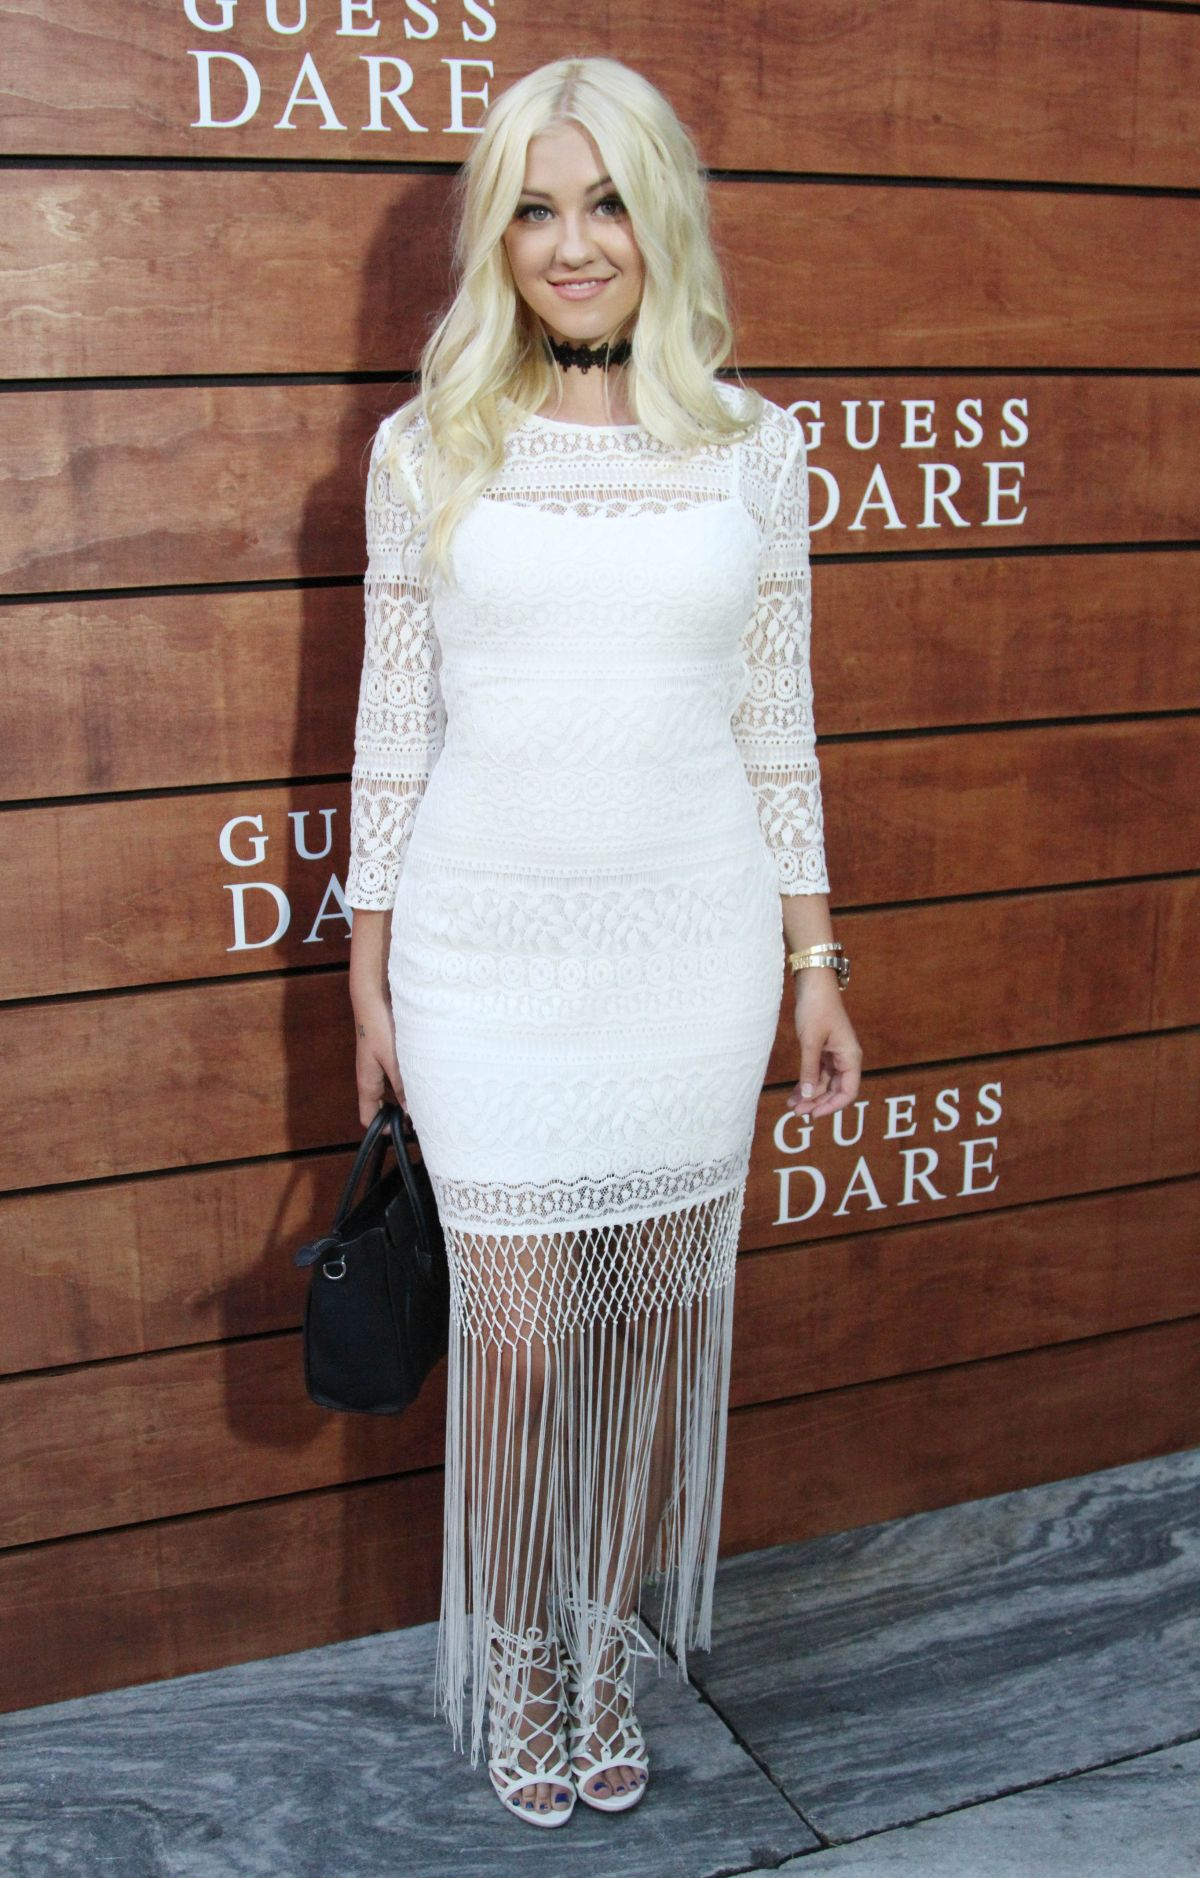 AVA SAMBORA at Guess Dare + Double Dare Fragrance Launch in West Hollywood 07/27/2016